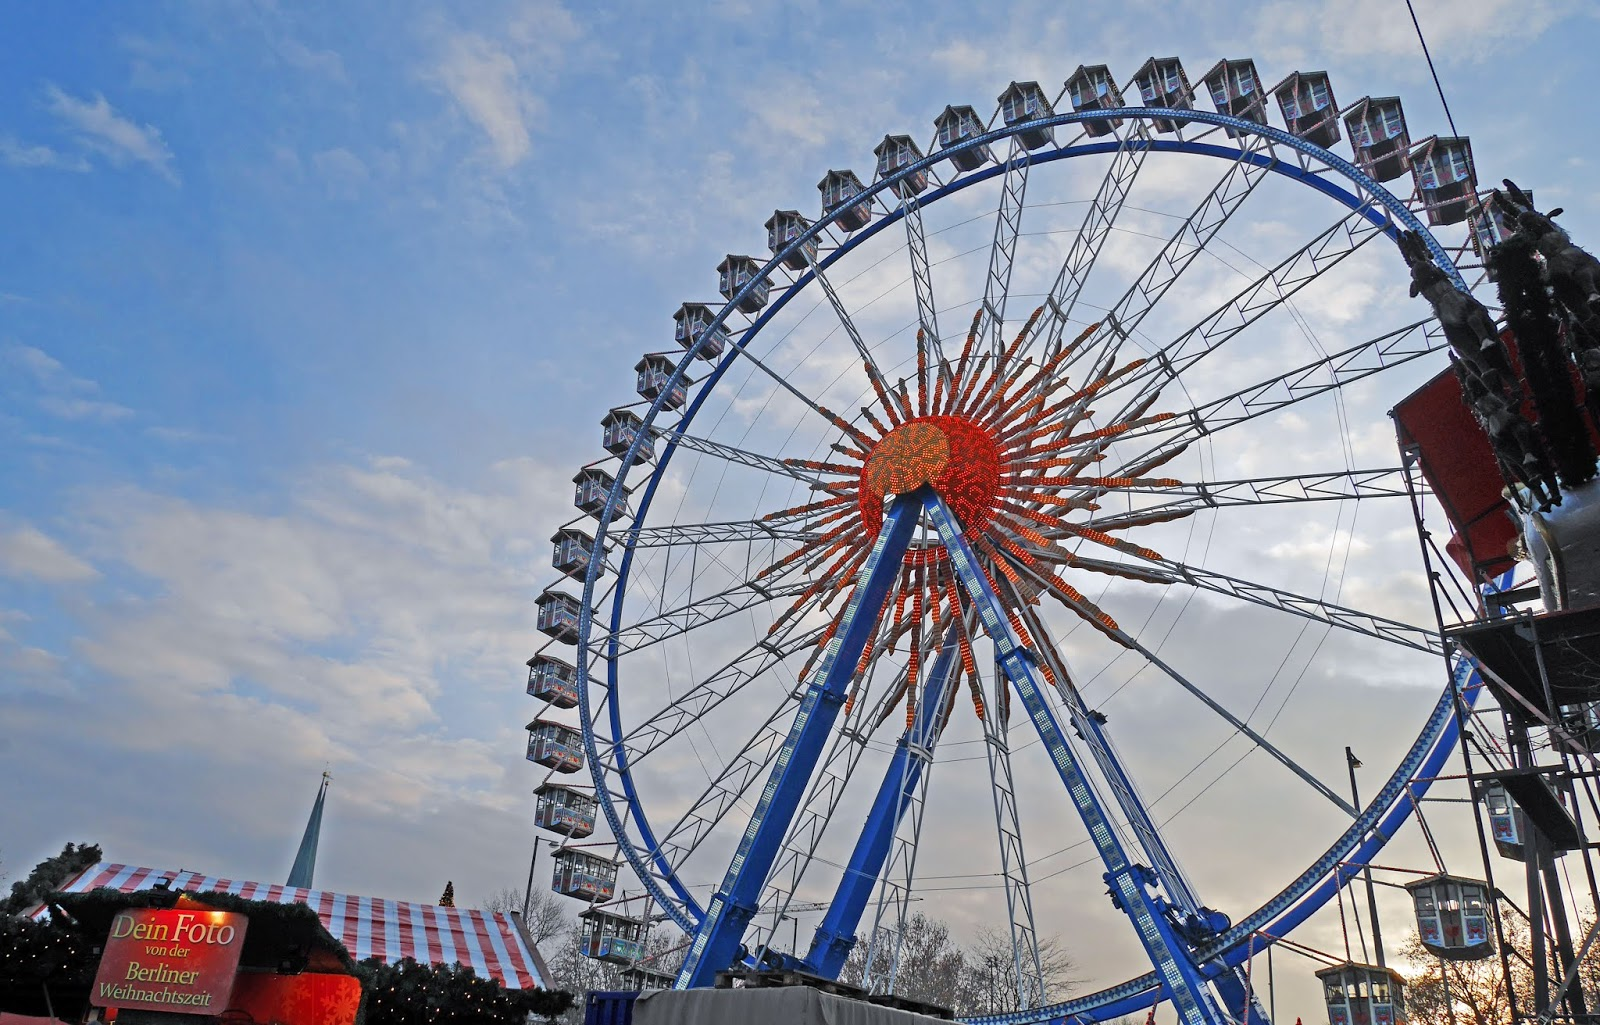 Ferris wheel at the Alexanderplatz Christmas Market in Berlin